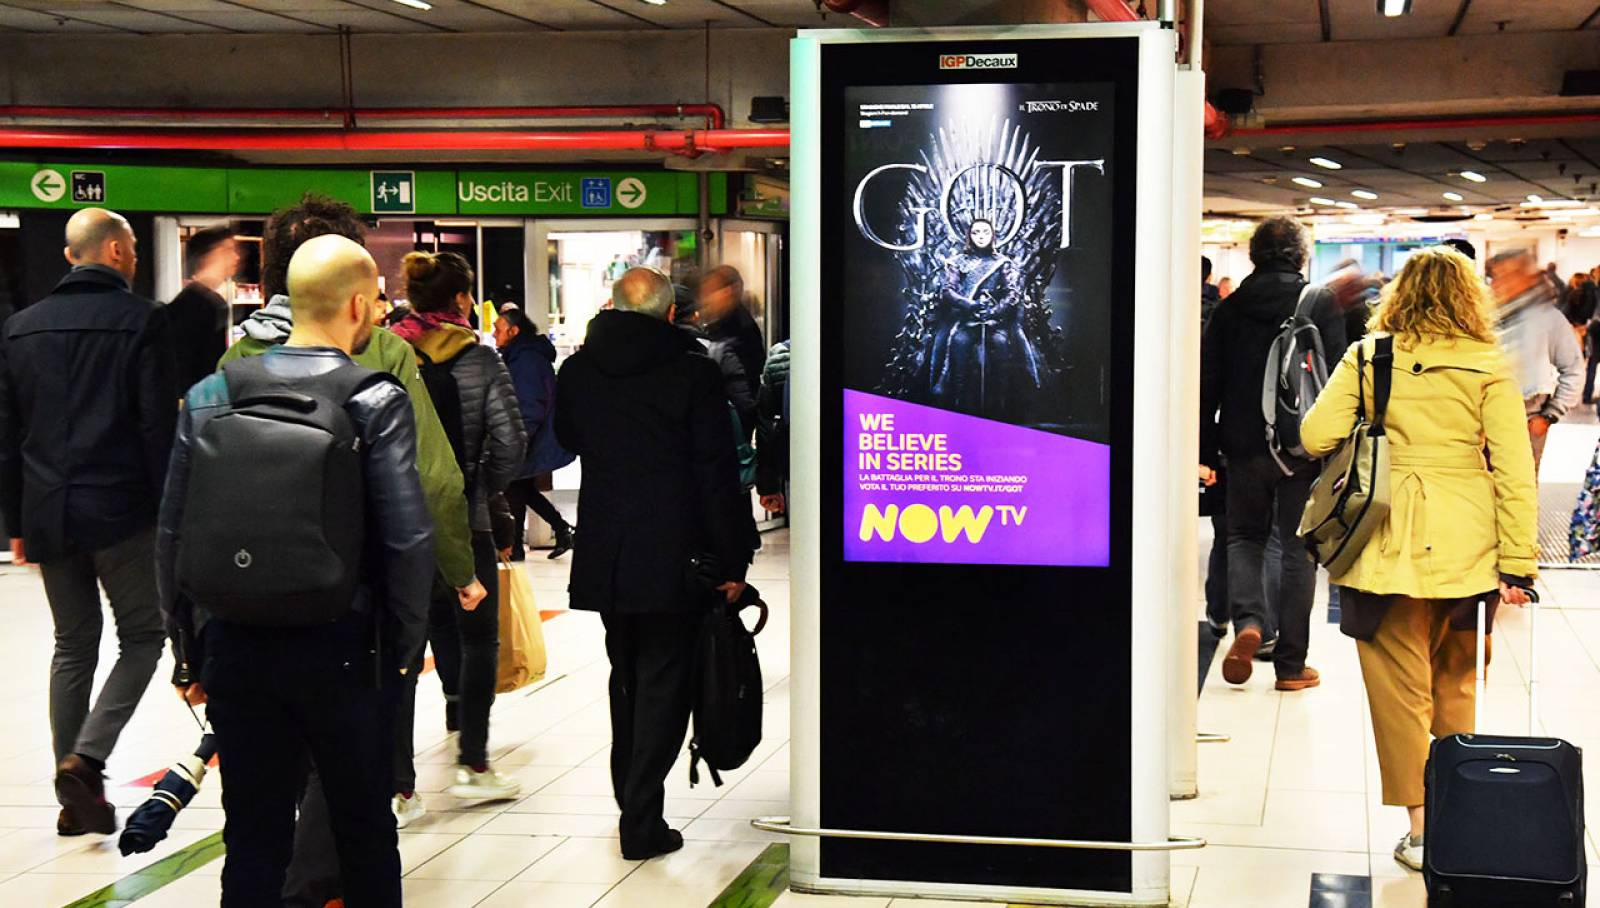 Dooh media IGPDecaux Milan Underground Digital Network for Game of Thrones